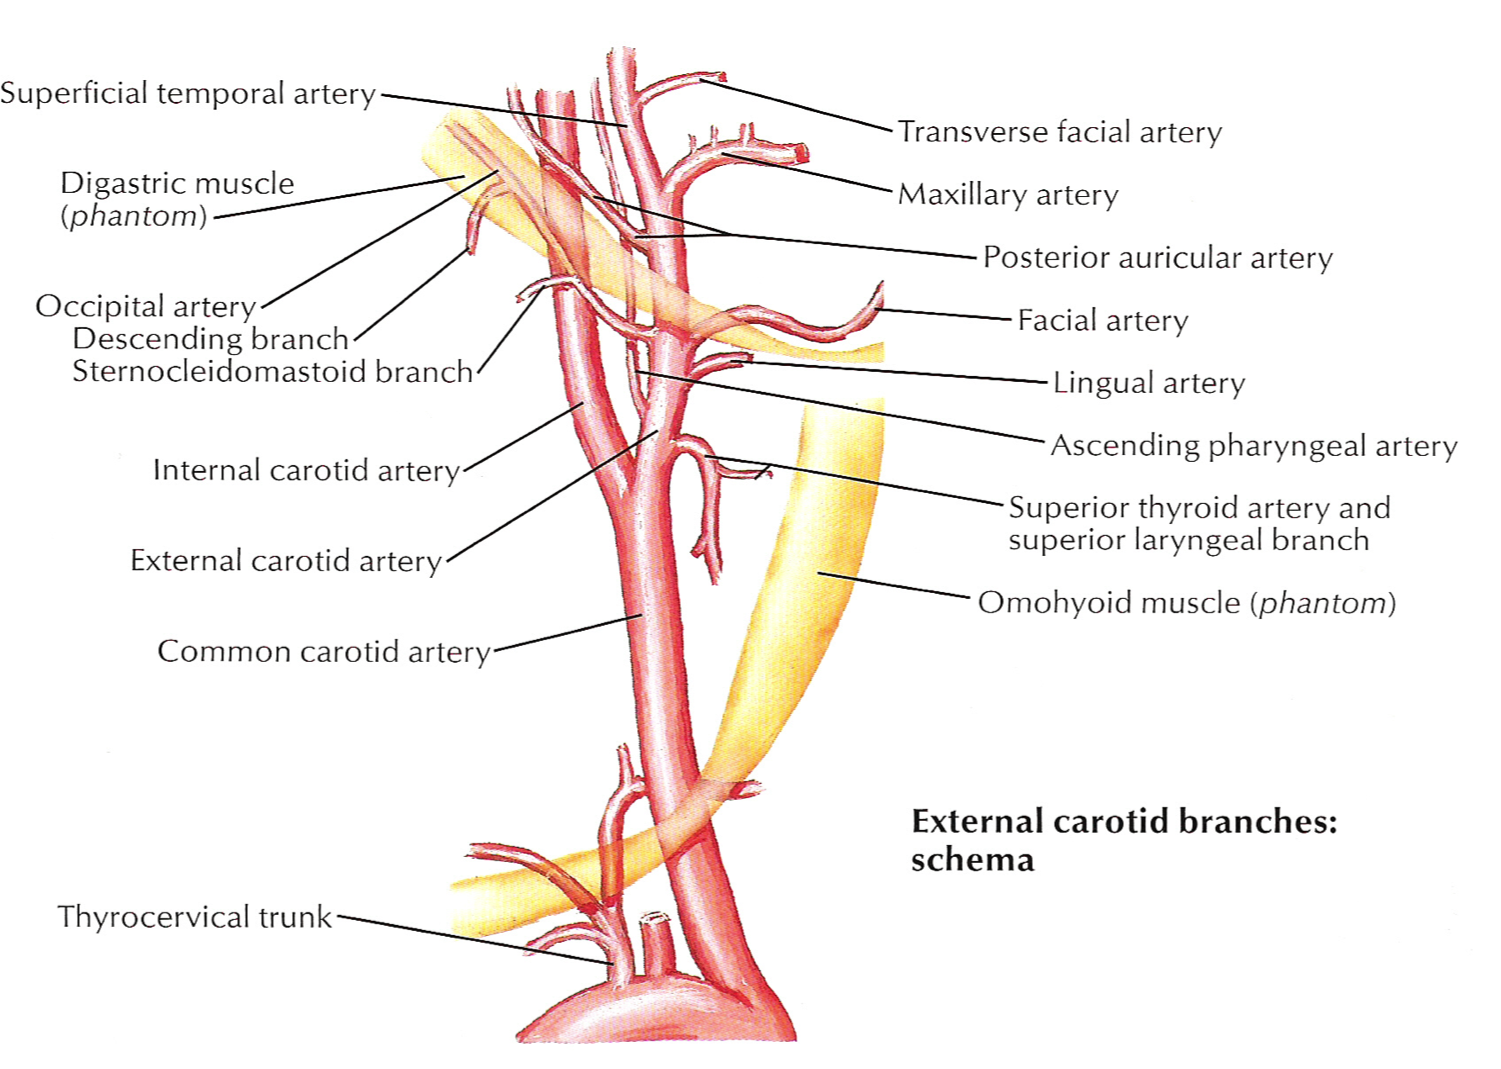 branches of ica by atlas anatomy - Google Search | vascular ...